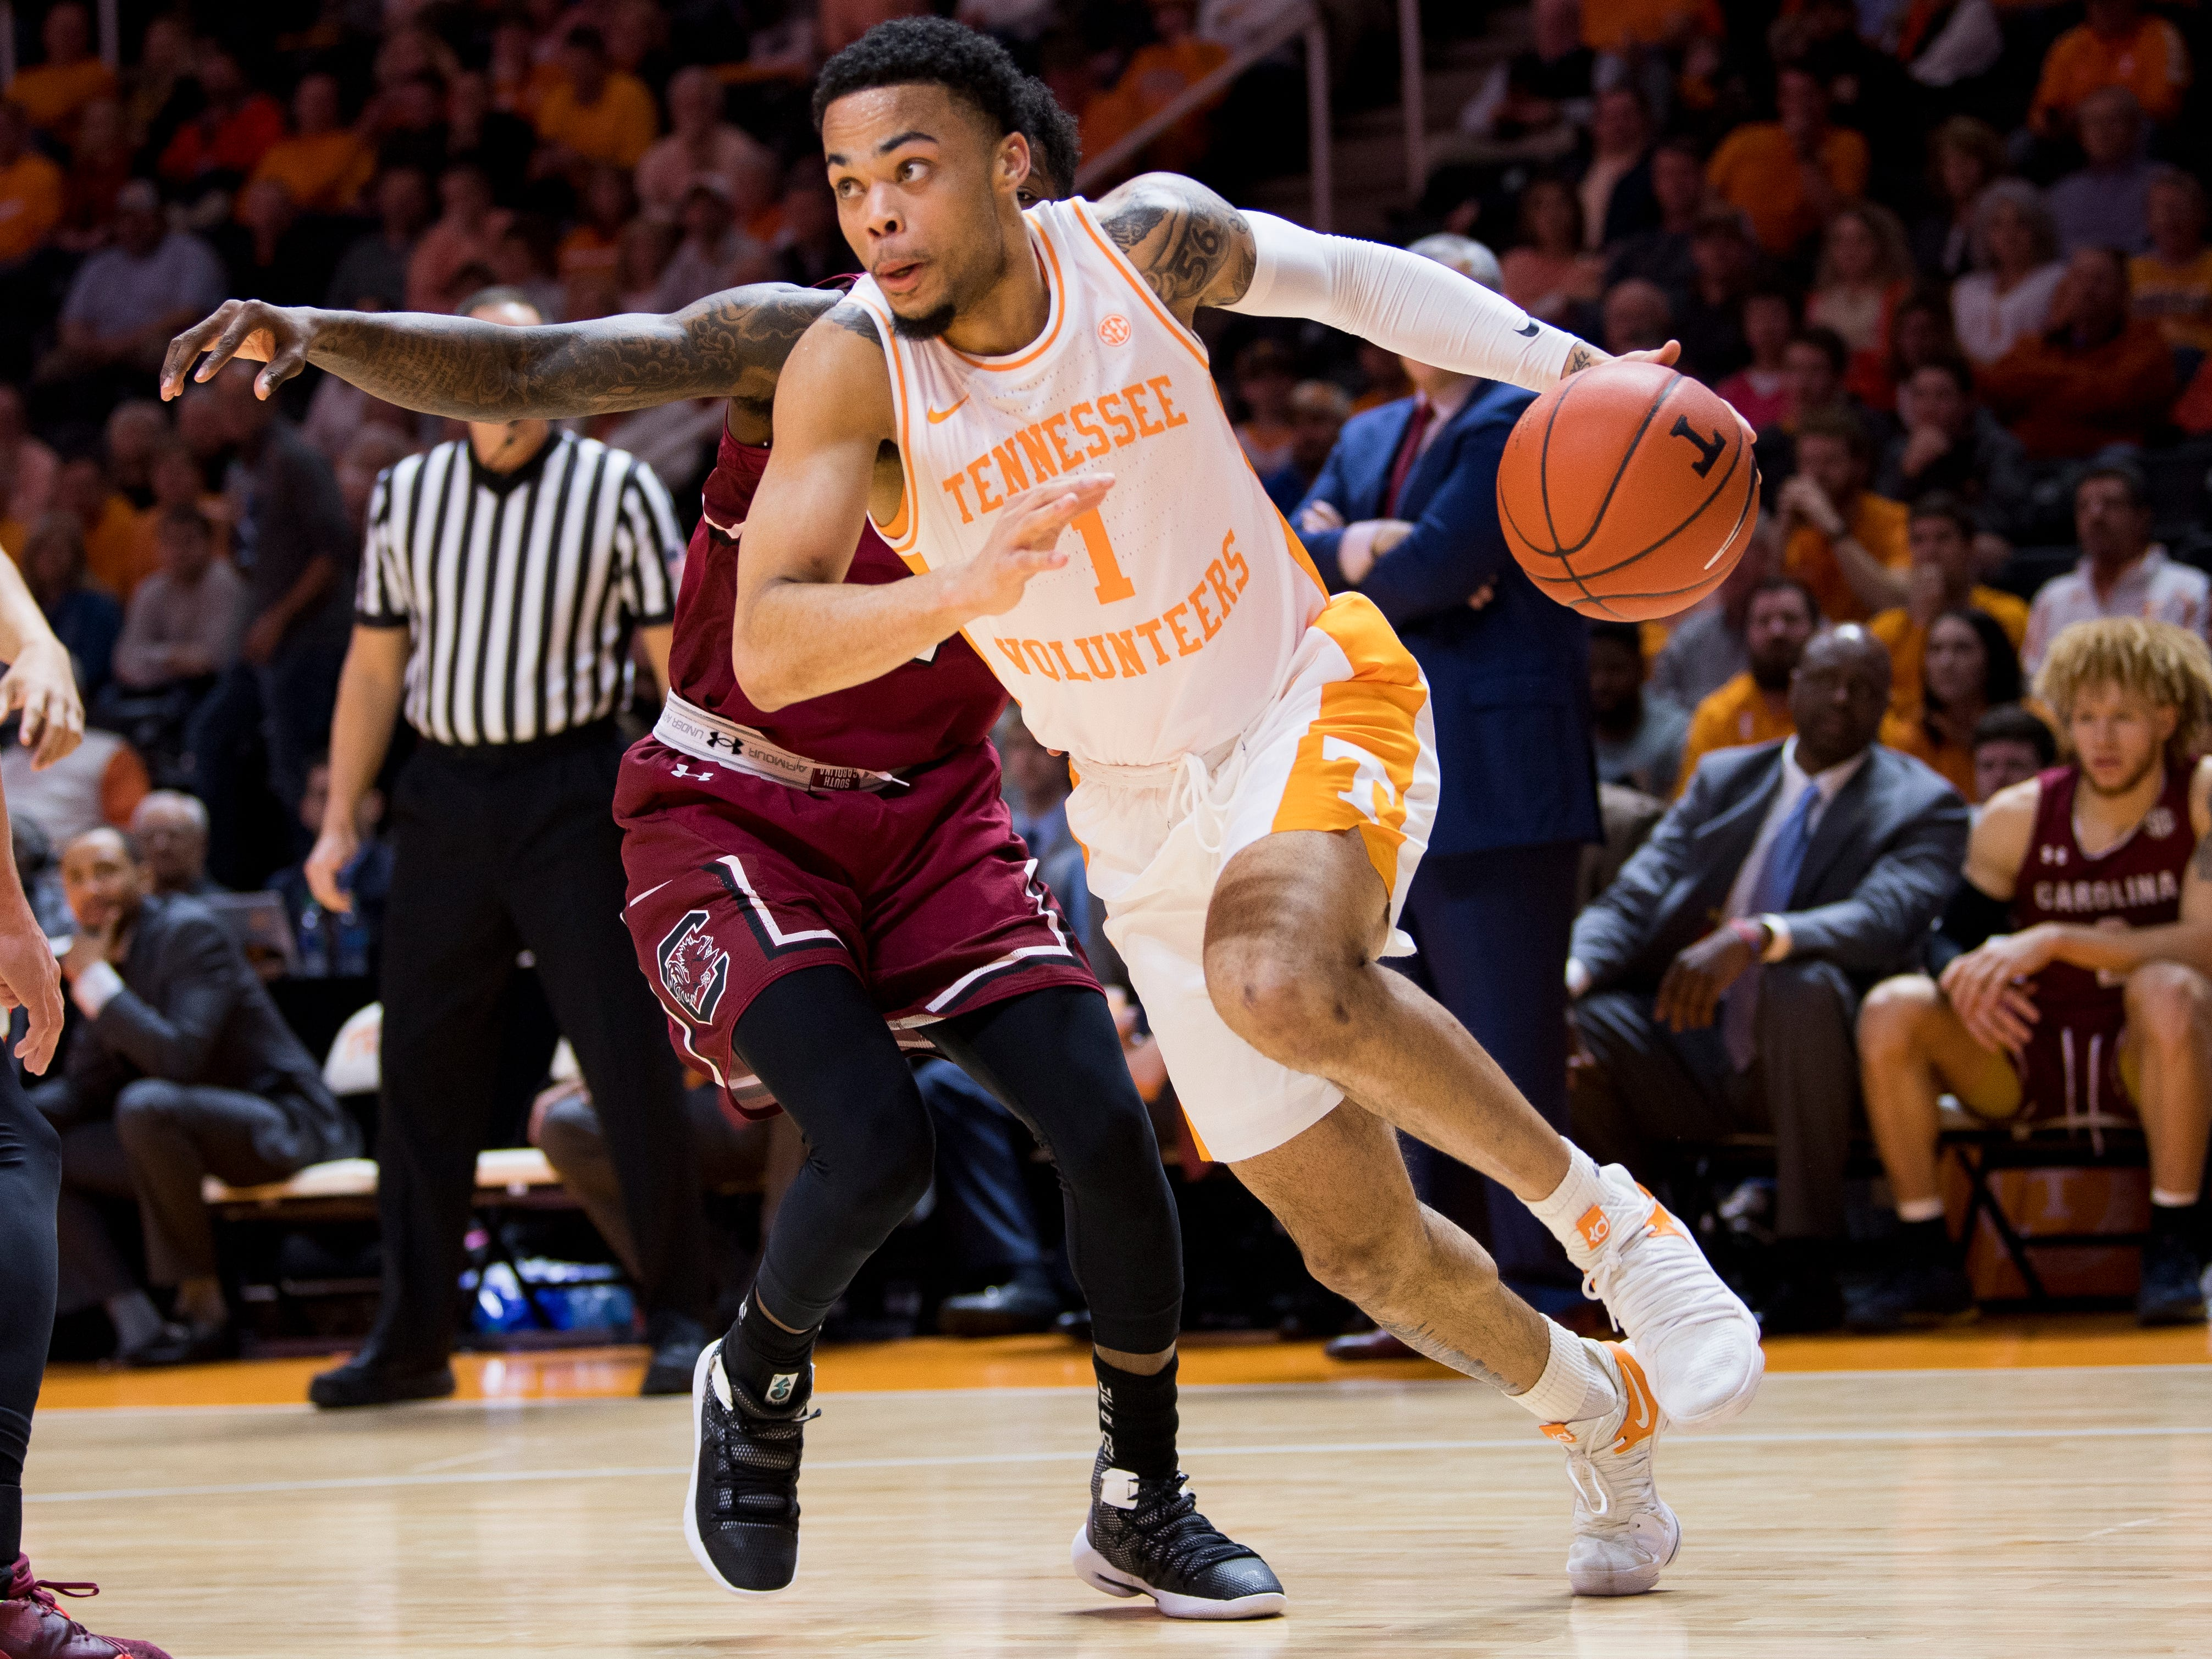 Tennessee guard Lamonte Turner (1) drives down court during Tennessee's home SEC game against South Carolina at Thompson-Boling Arena in Knoxville on Wednesday, February 13, 2019.